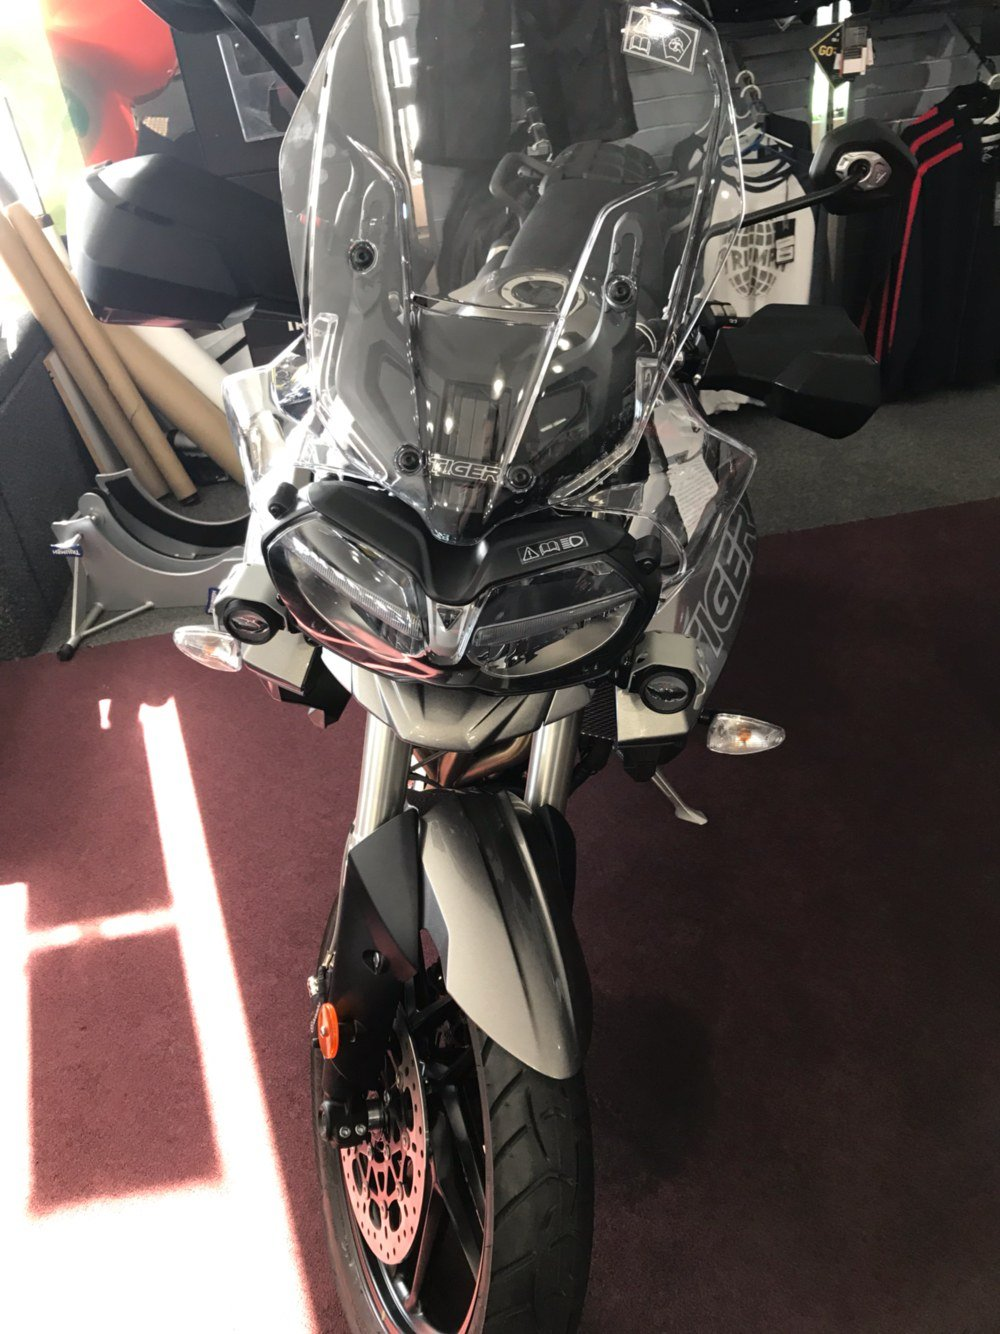 2019 Triumph Tiger 800 XRt in Belle Plaine, Minnesota - Photo 2